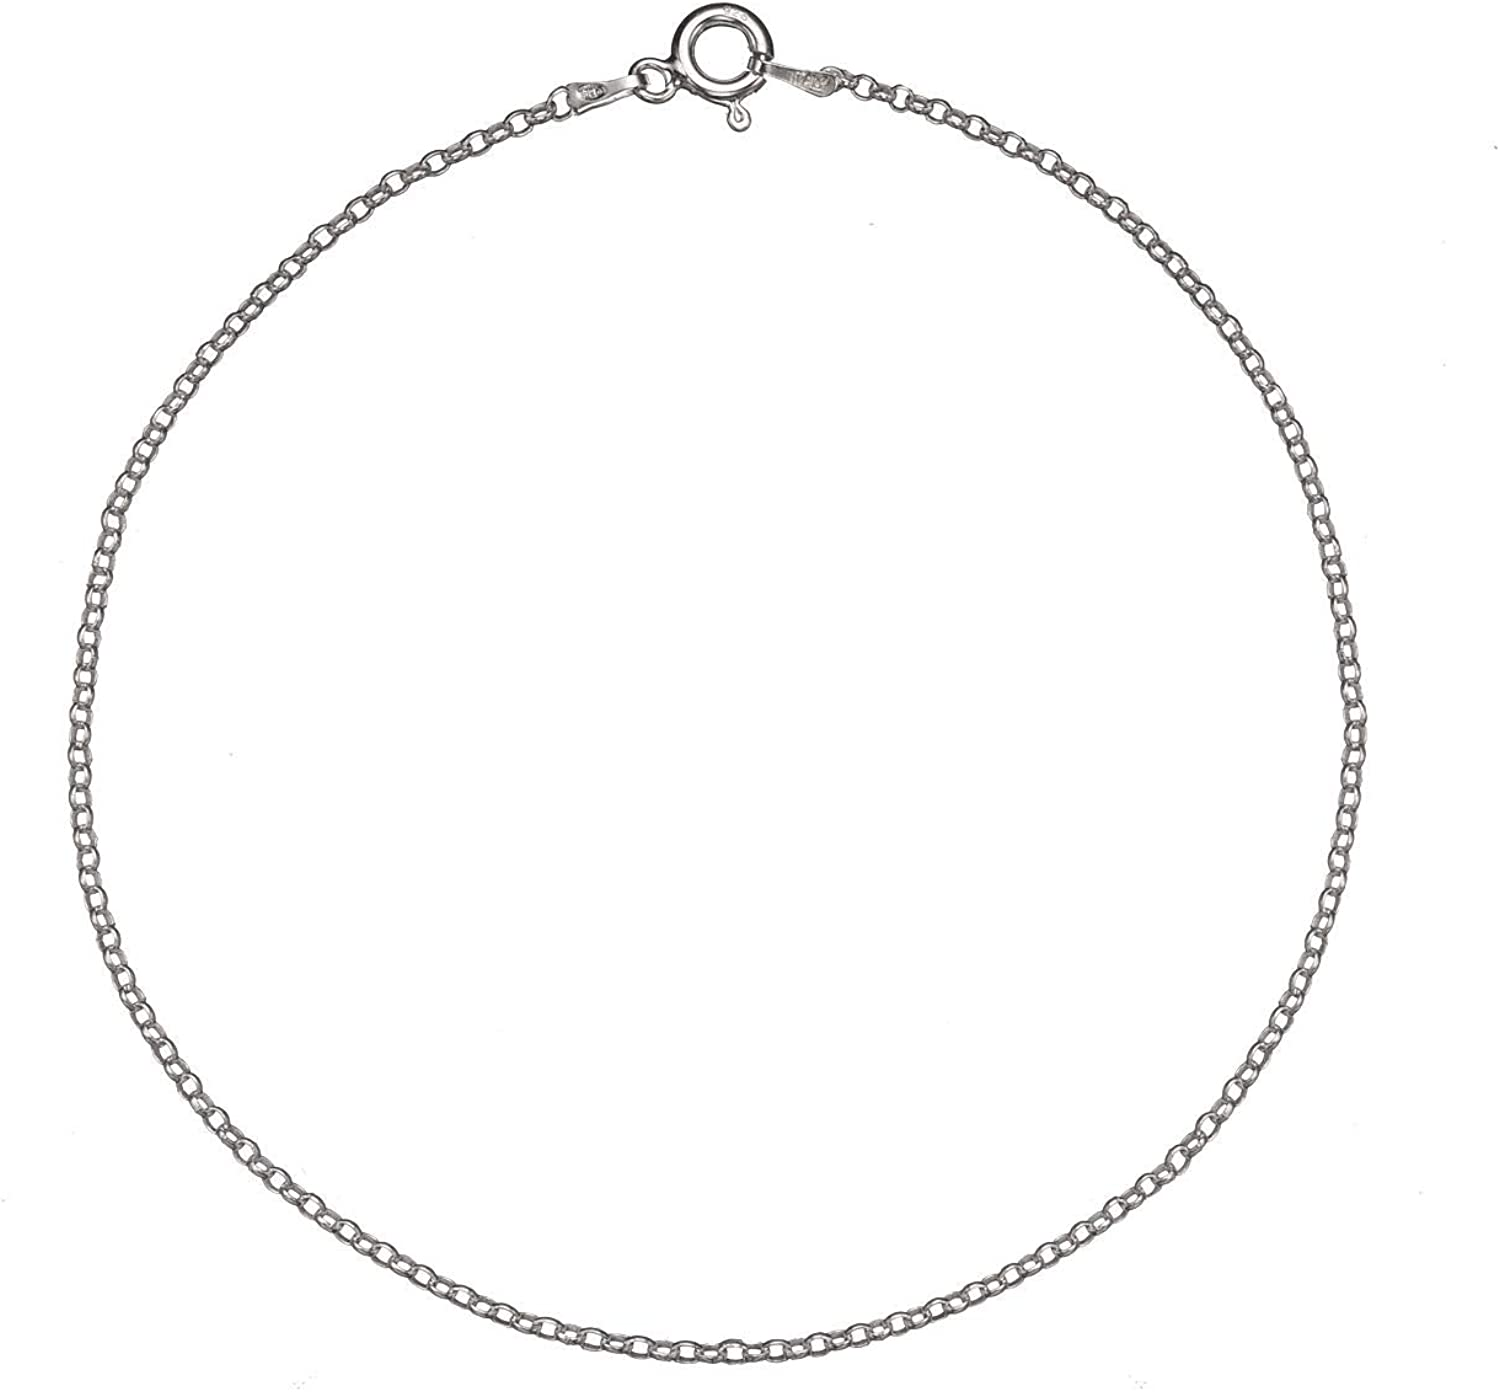 Adjustable Made In Italy - Sterling Silver Anklet YD Cable /& Bead Chain